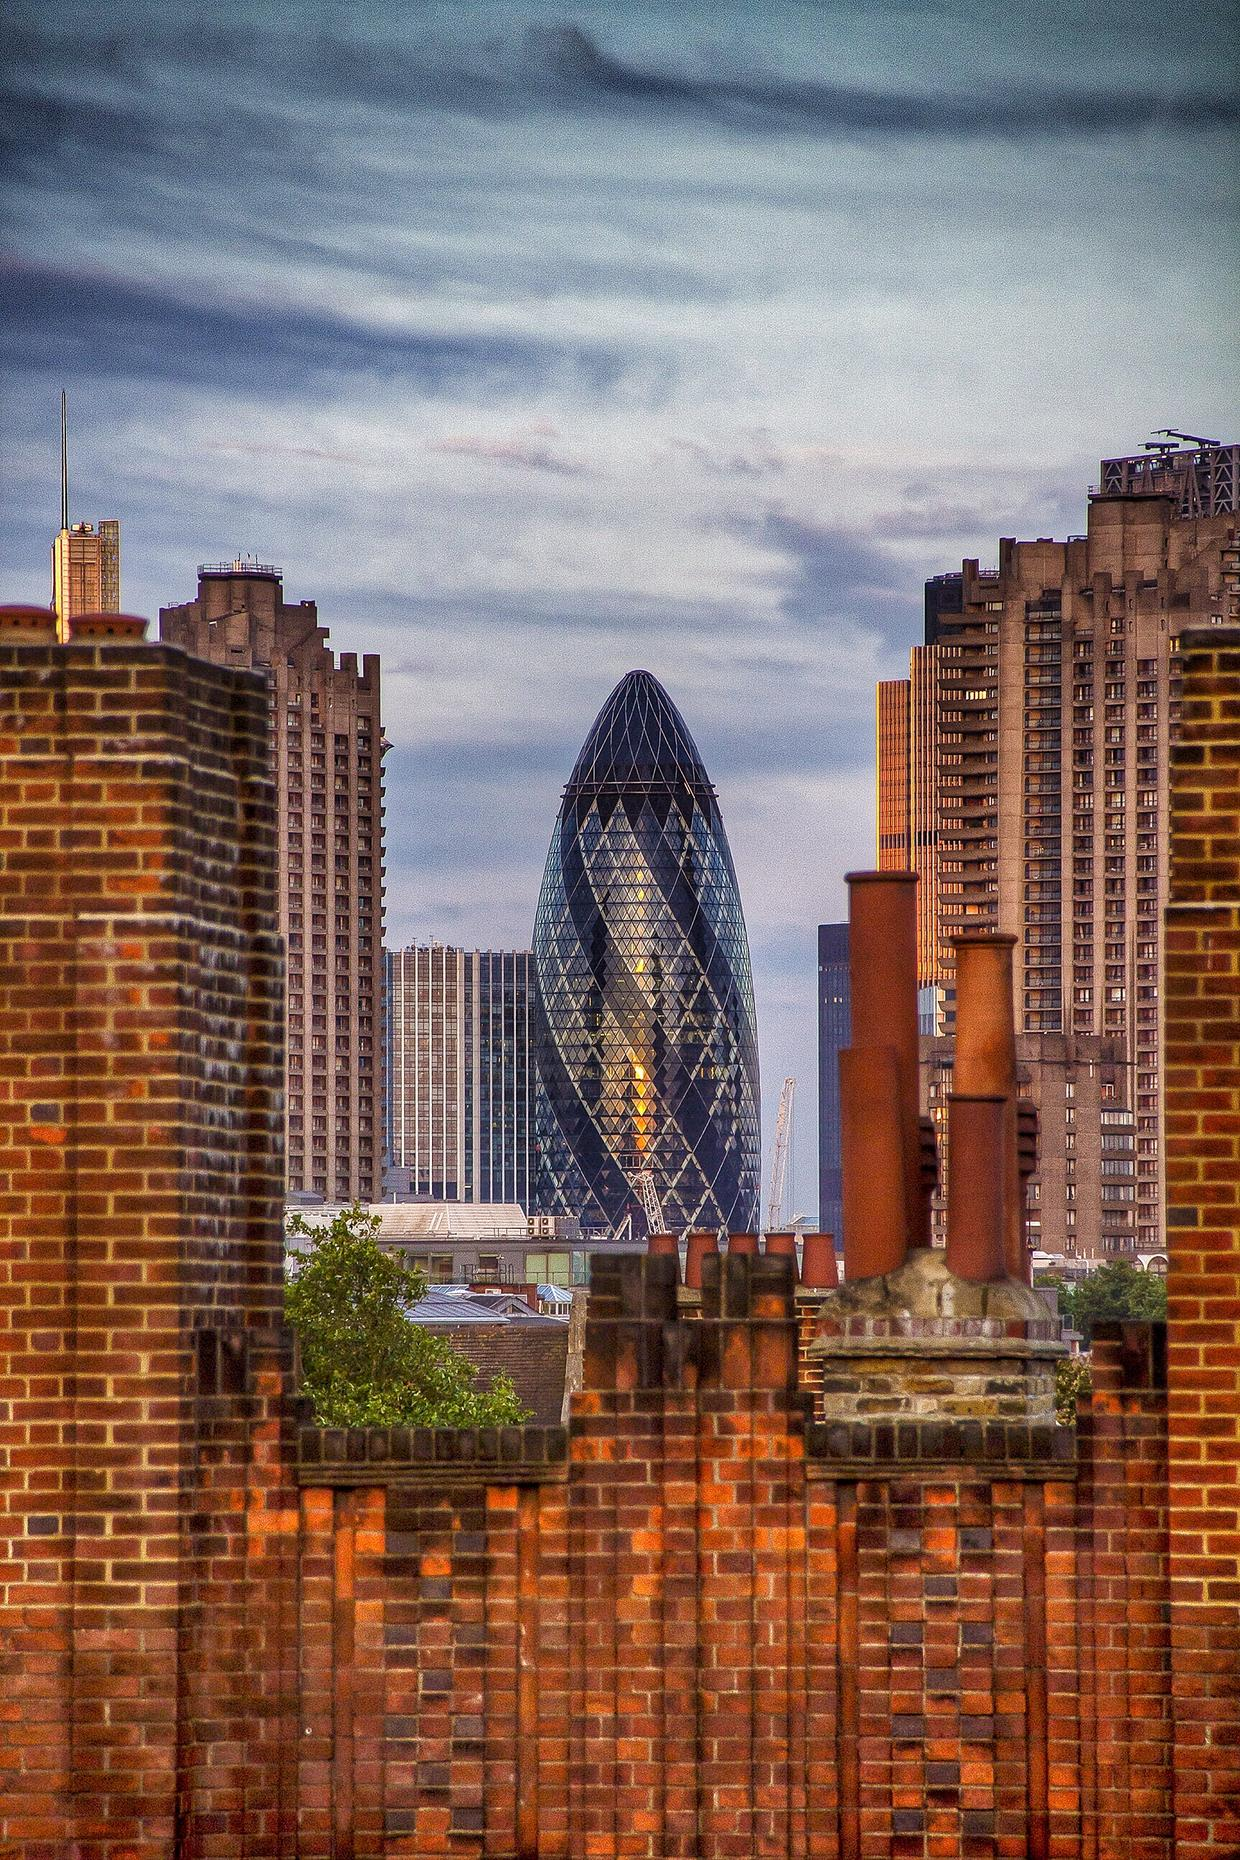 London's Gherkin Building